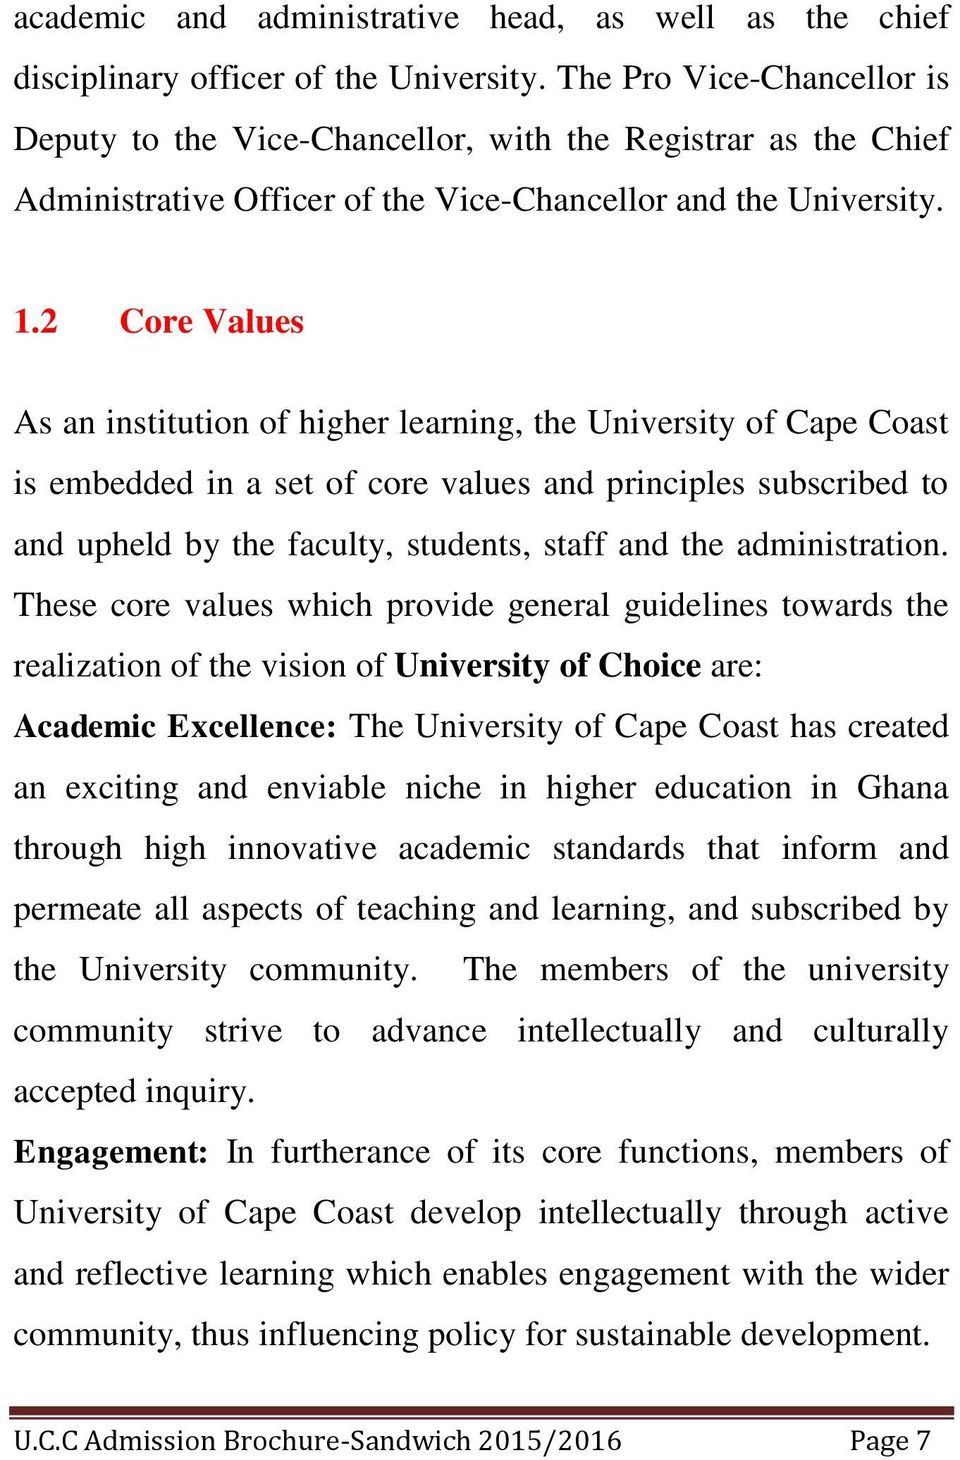 2 Core Values As an institution of higher learning, the University of Cape Coast is embedded in a set of core values and principles subscribed to and upheld by the faculty, students, staff and the